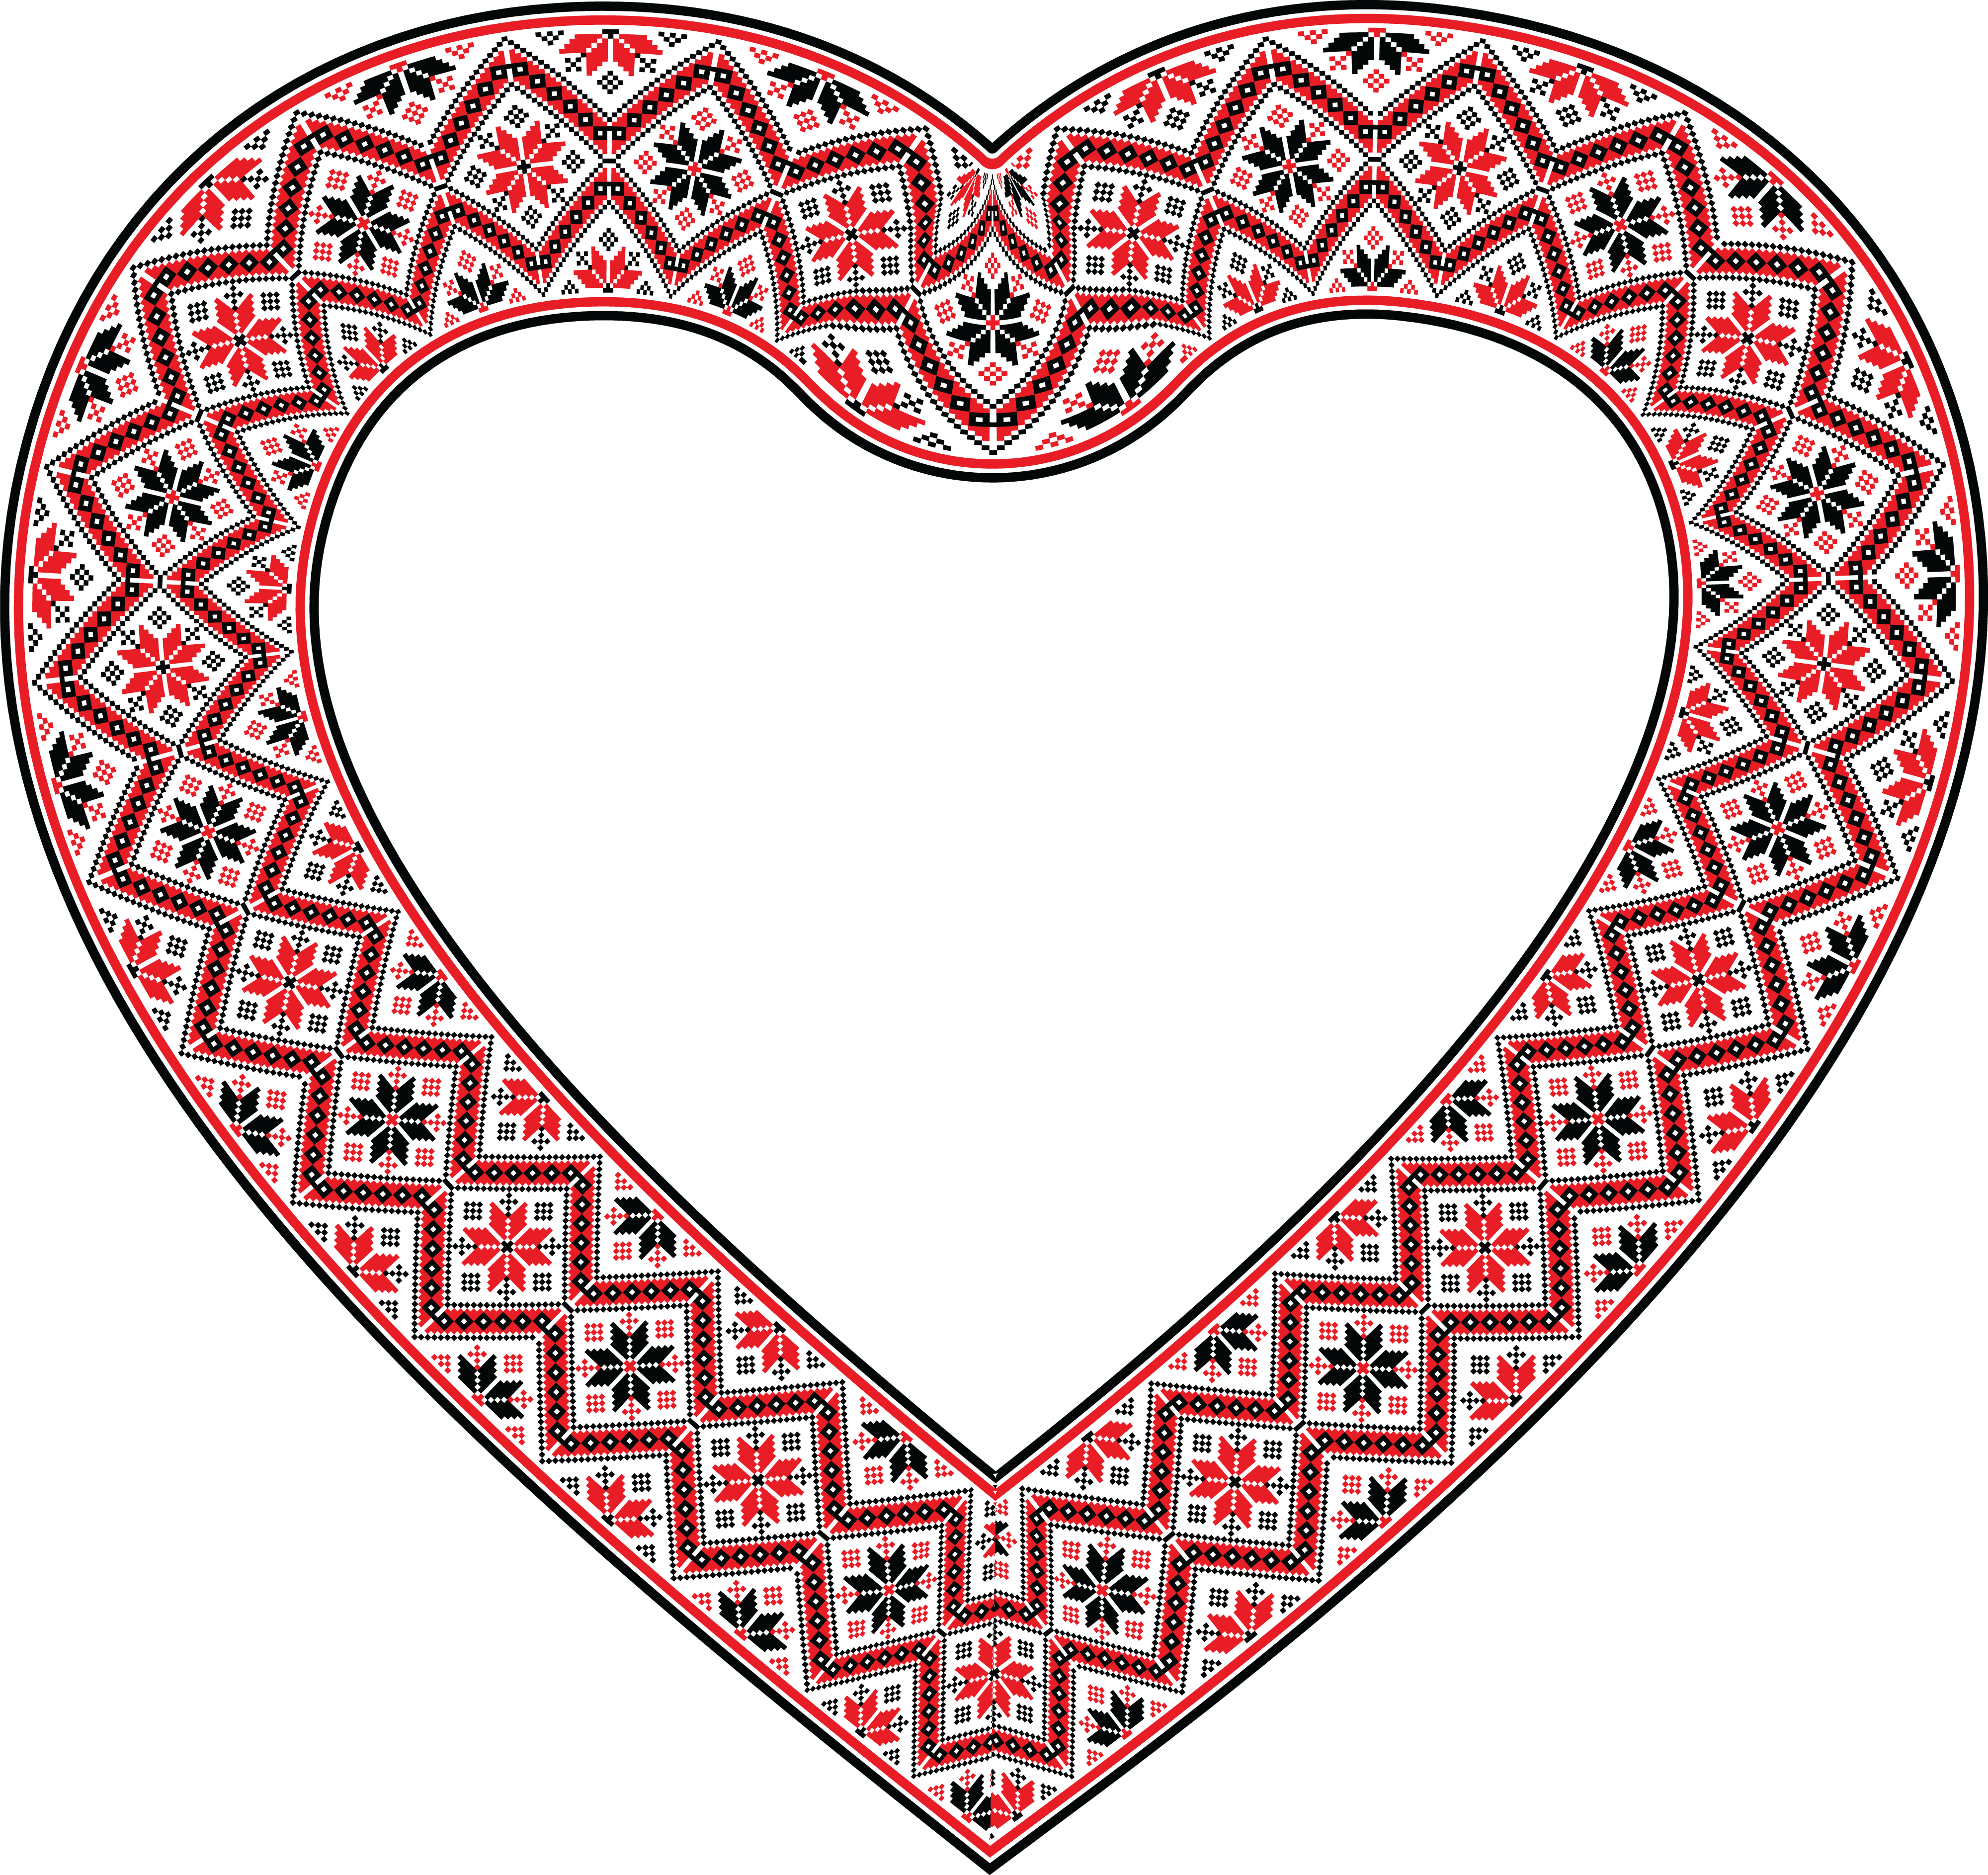 Free Clipart Of A patterned embroidery heart frame